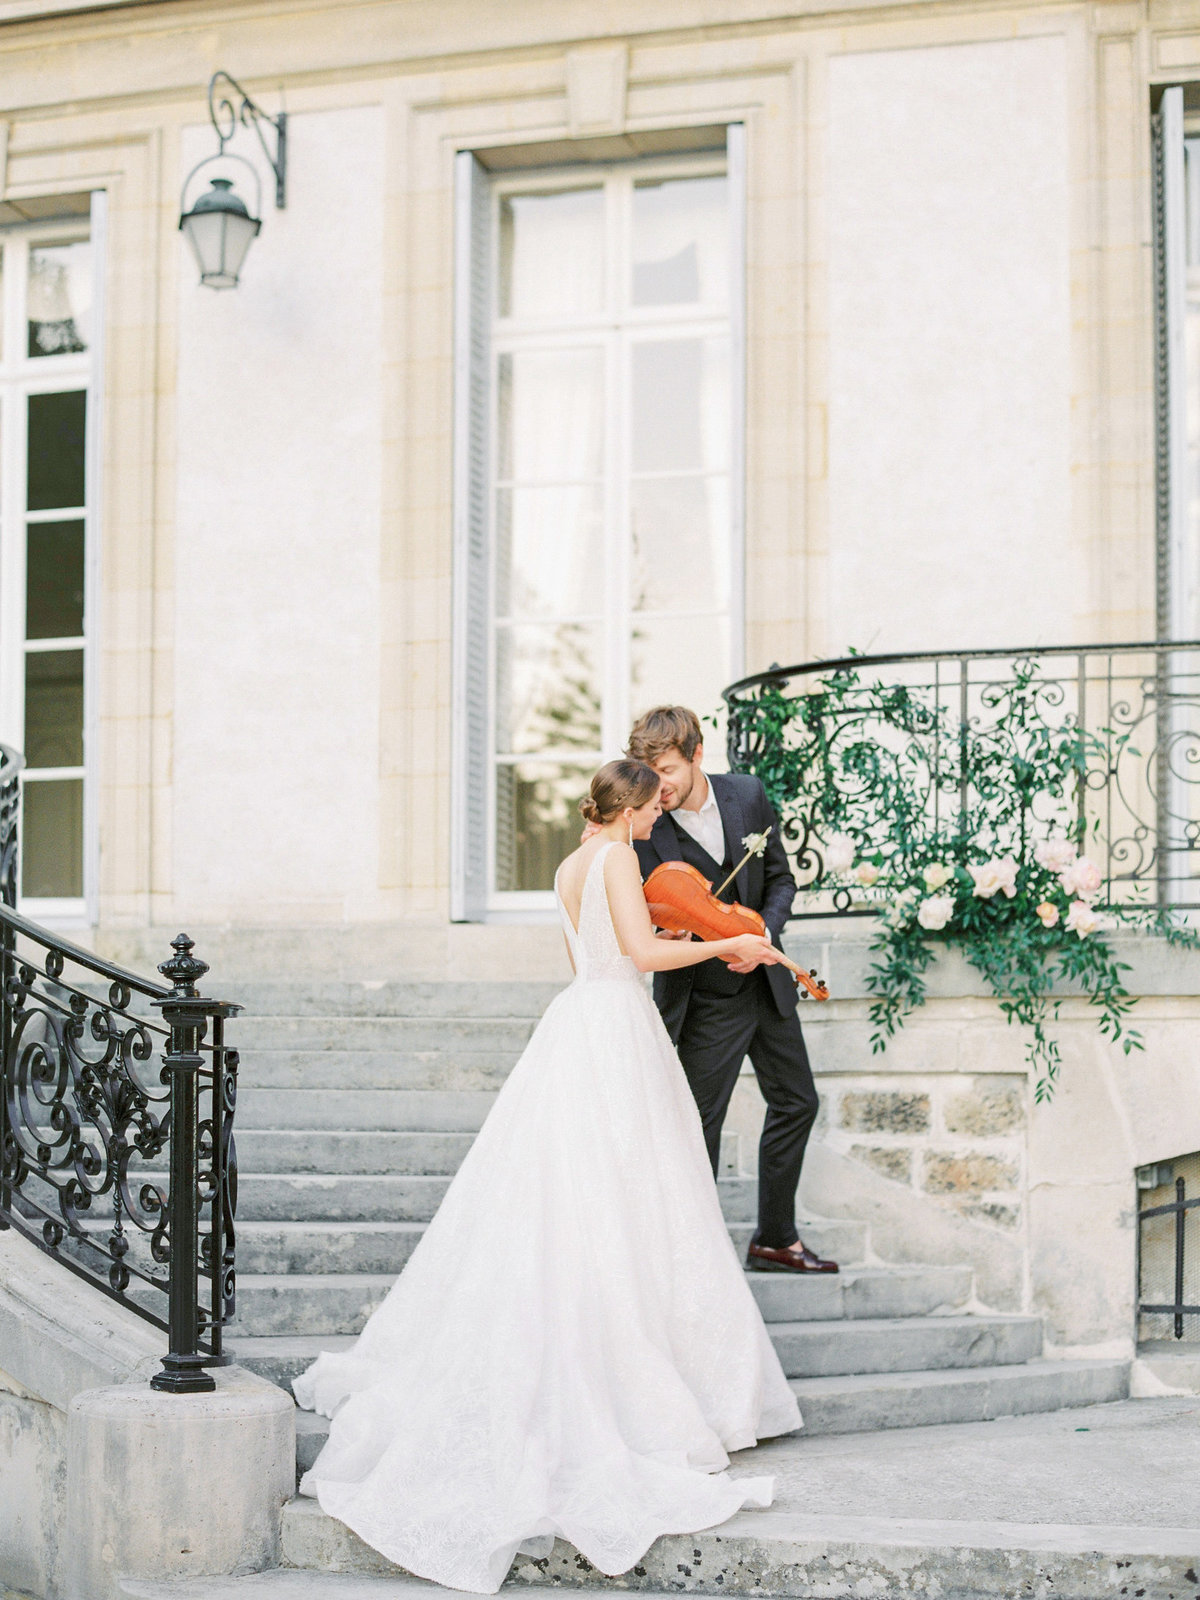 Luxurious french chateau wedding amelia soegijono0037